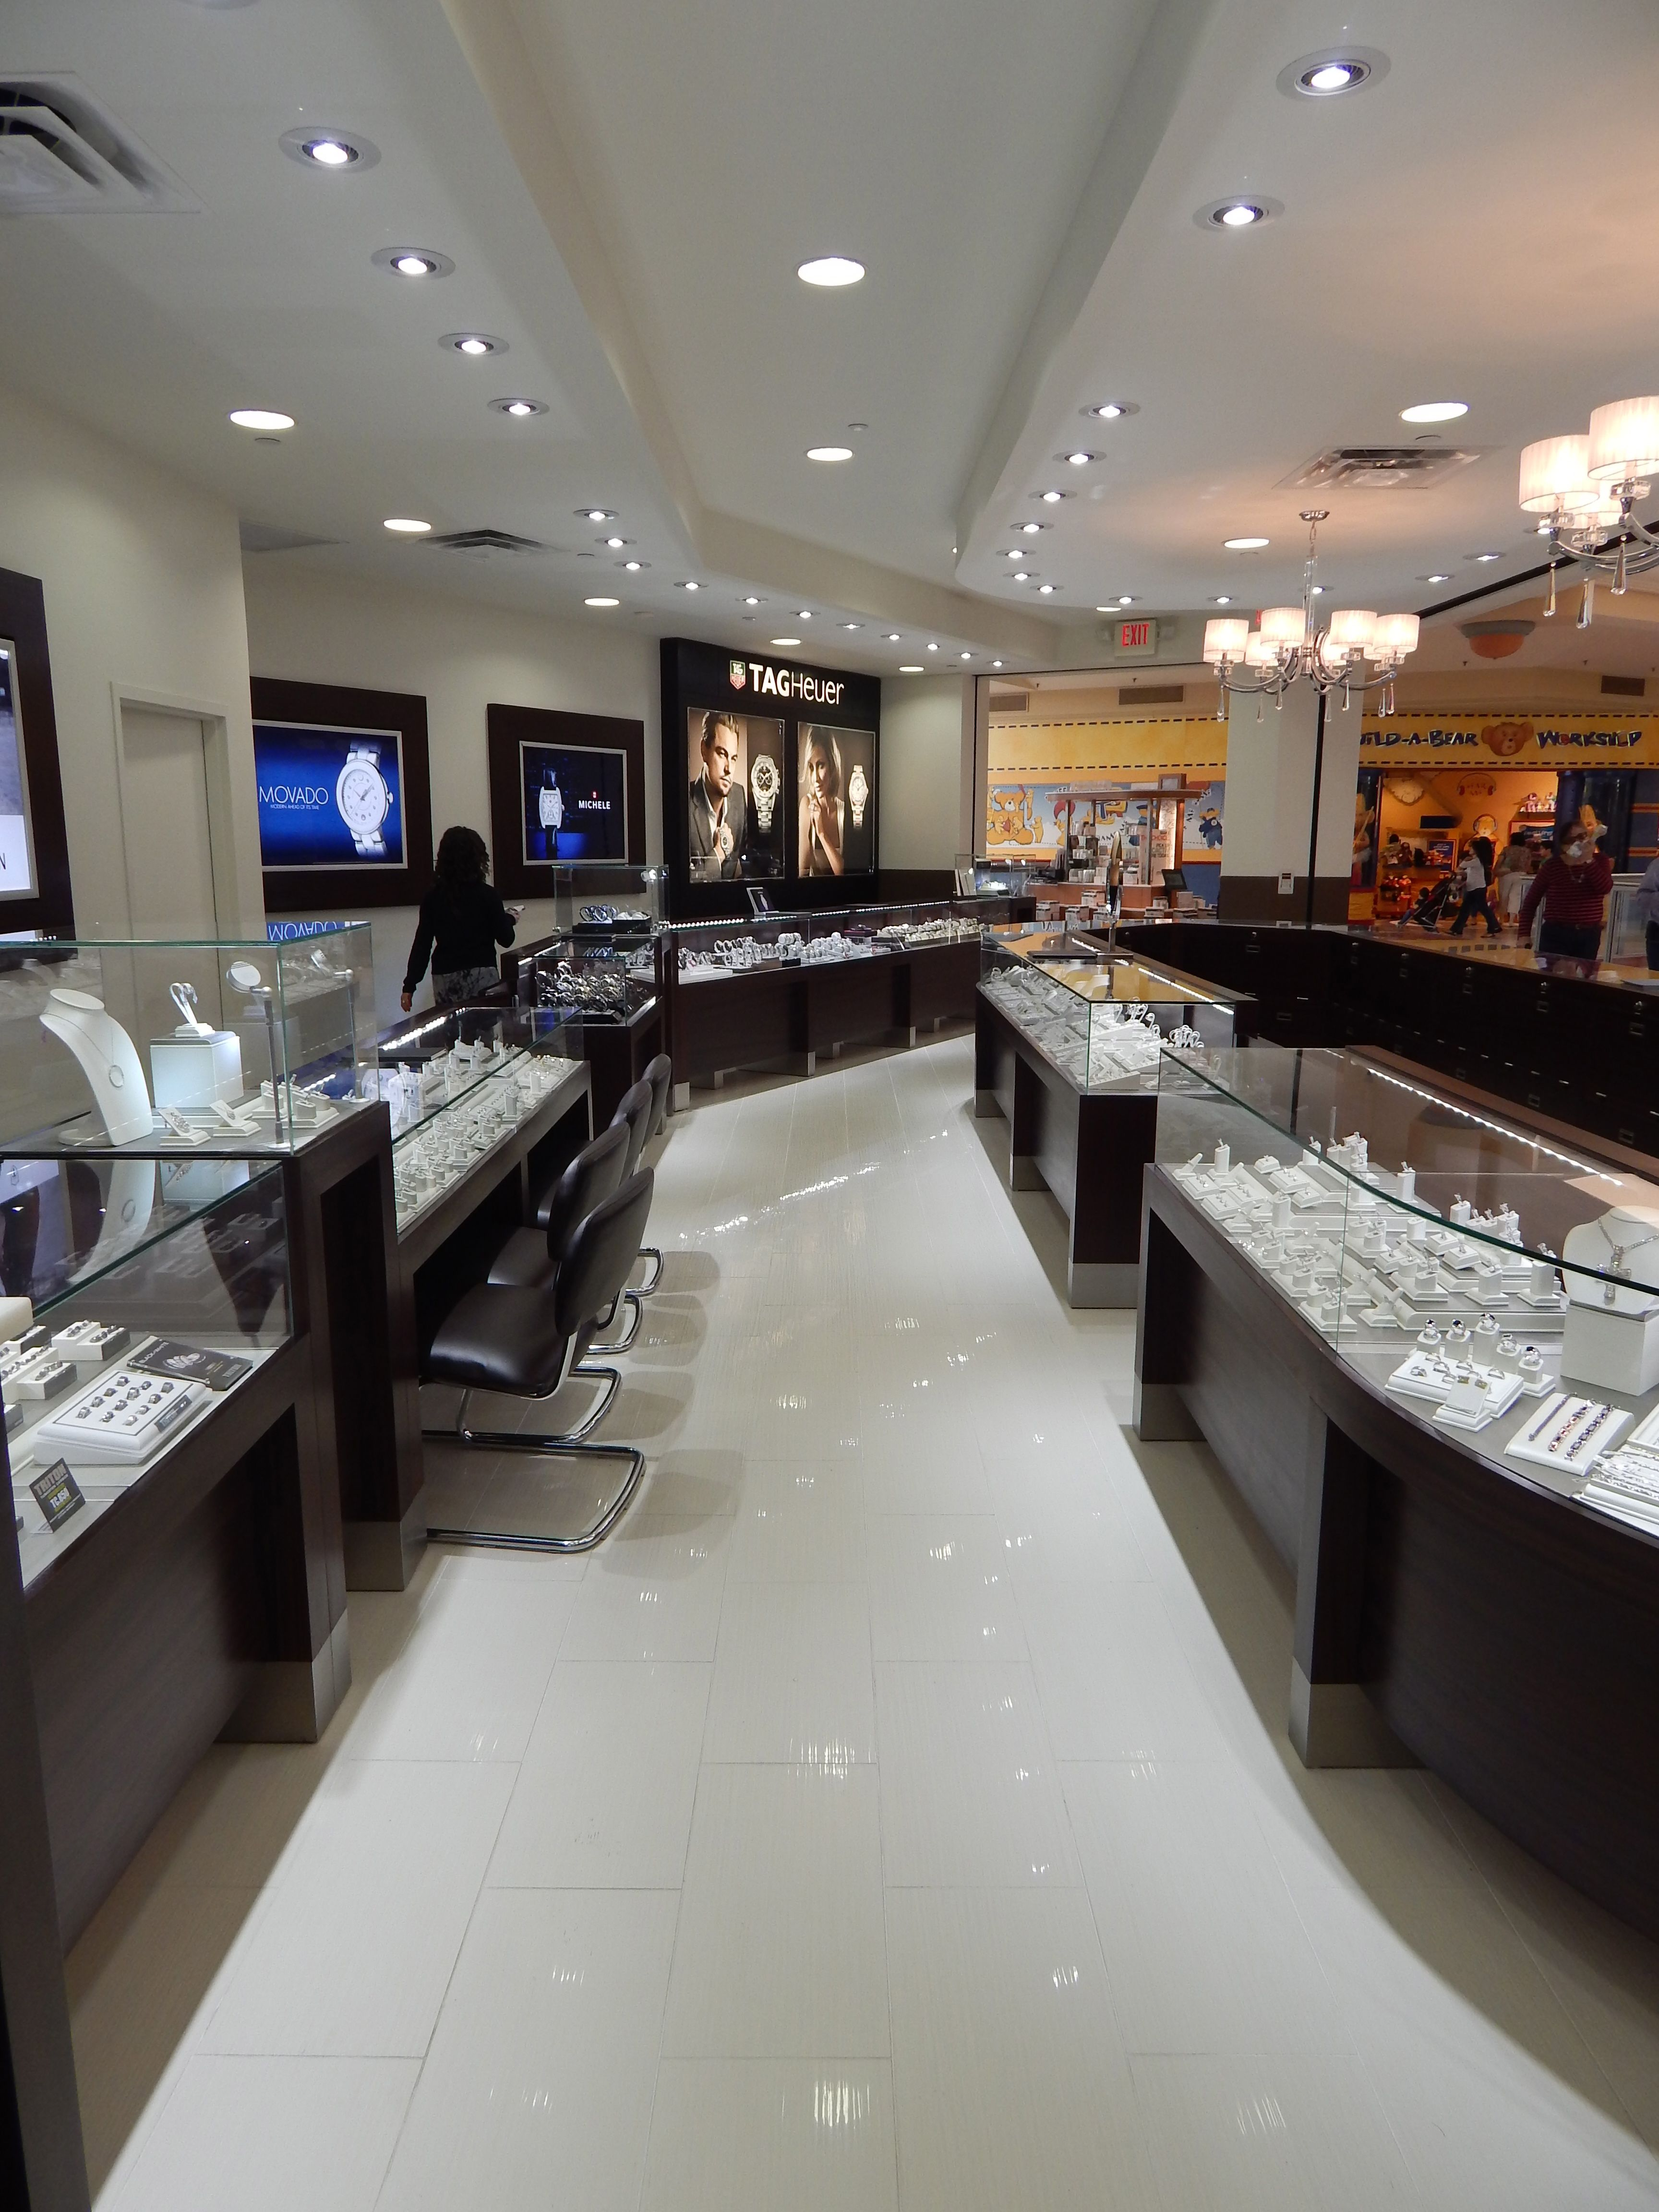 BRAND JEWELERS Manufacture & Design of Store Fixtures by Artco Group.  Proudly Made in America